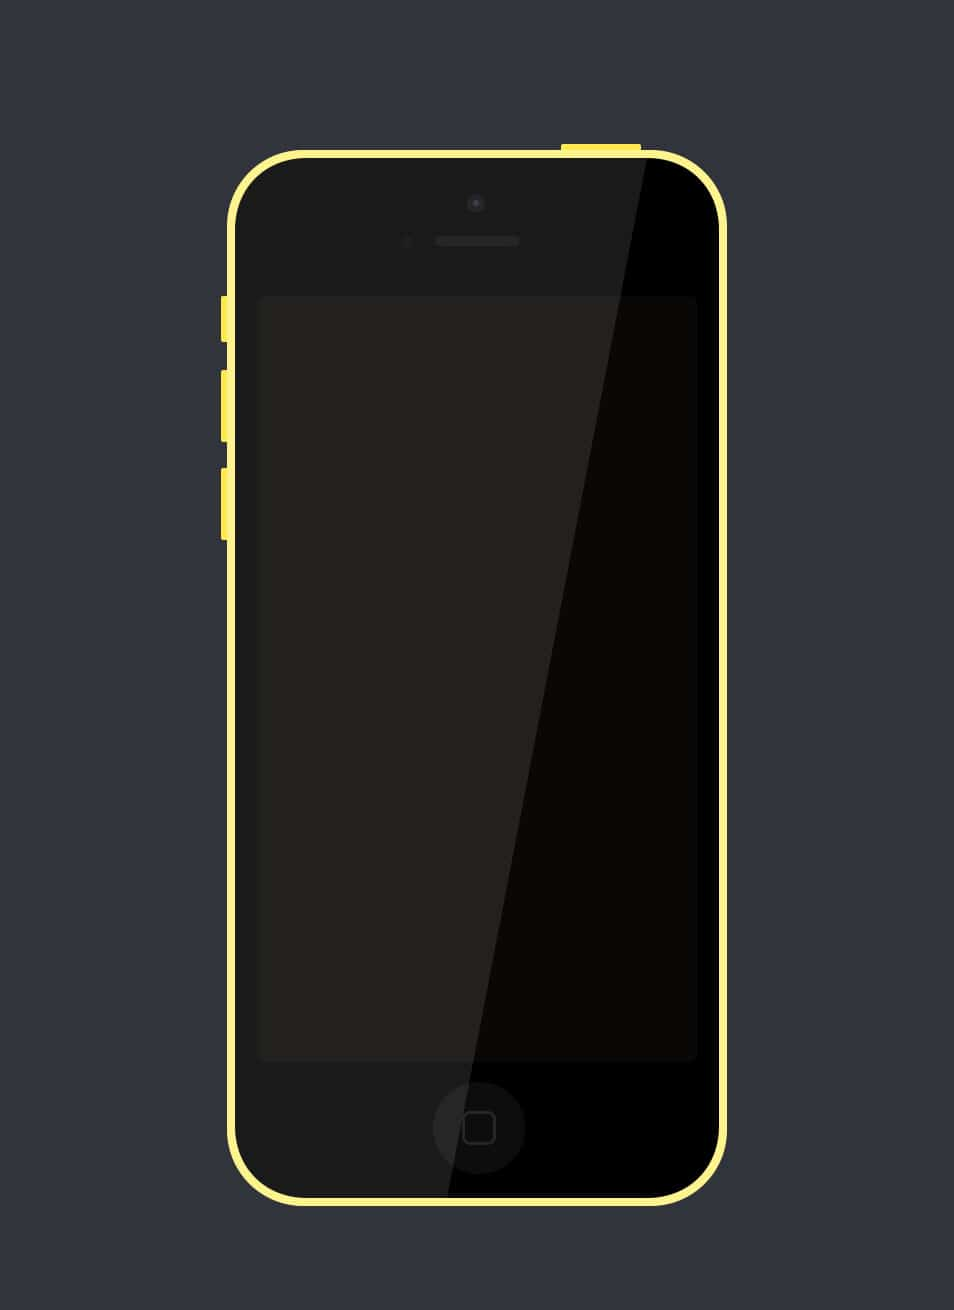 A Simple iPhone 5c (PSD)